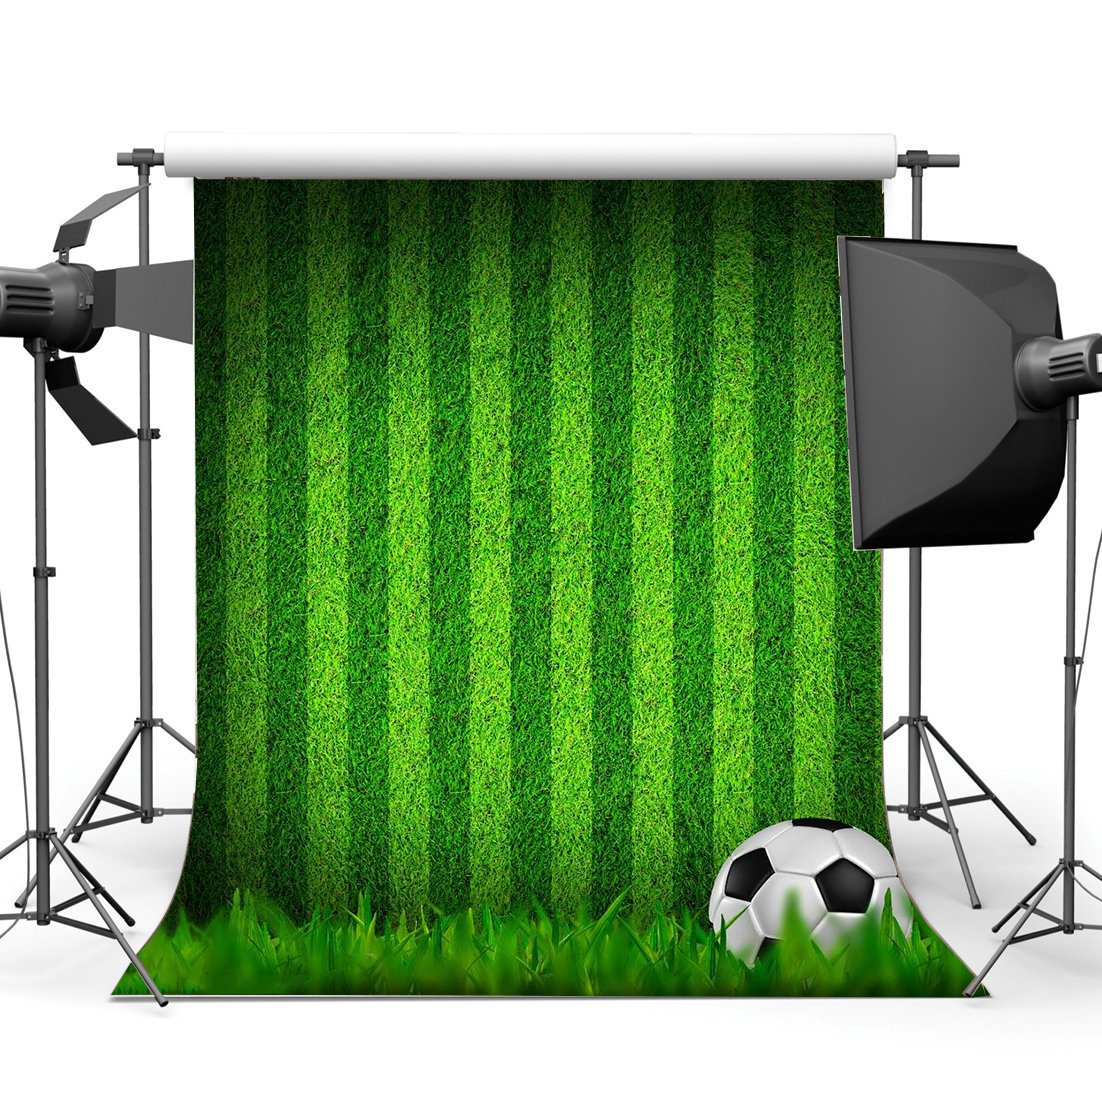 Football Backdrop Indoor Stadium Green Grass Meadow Stripes Wallpaper Sports Match School Game Gymnasium Background-in Photo Studio Accessories from Consumer Electronics